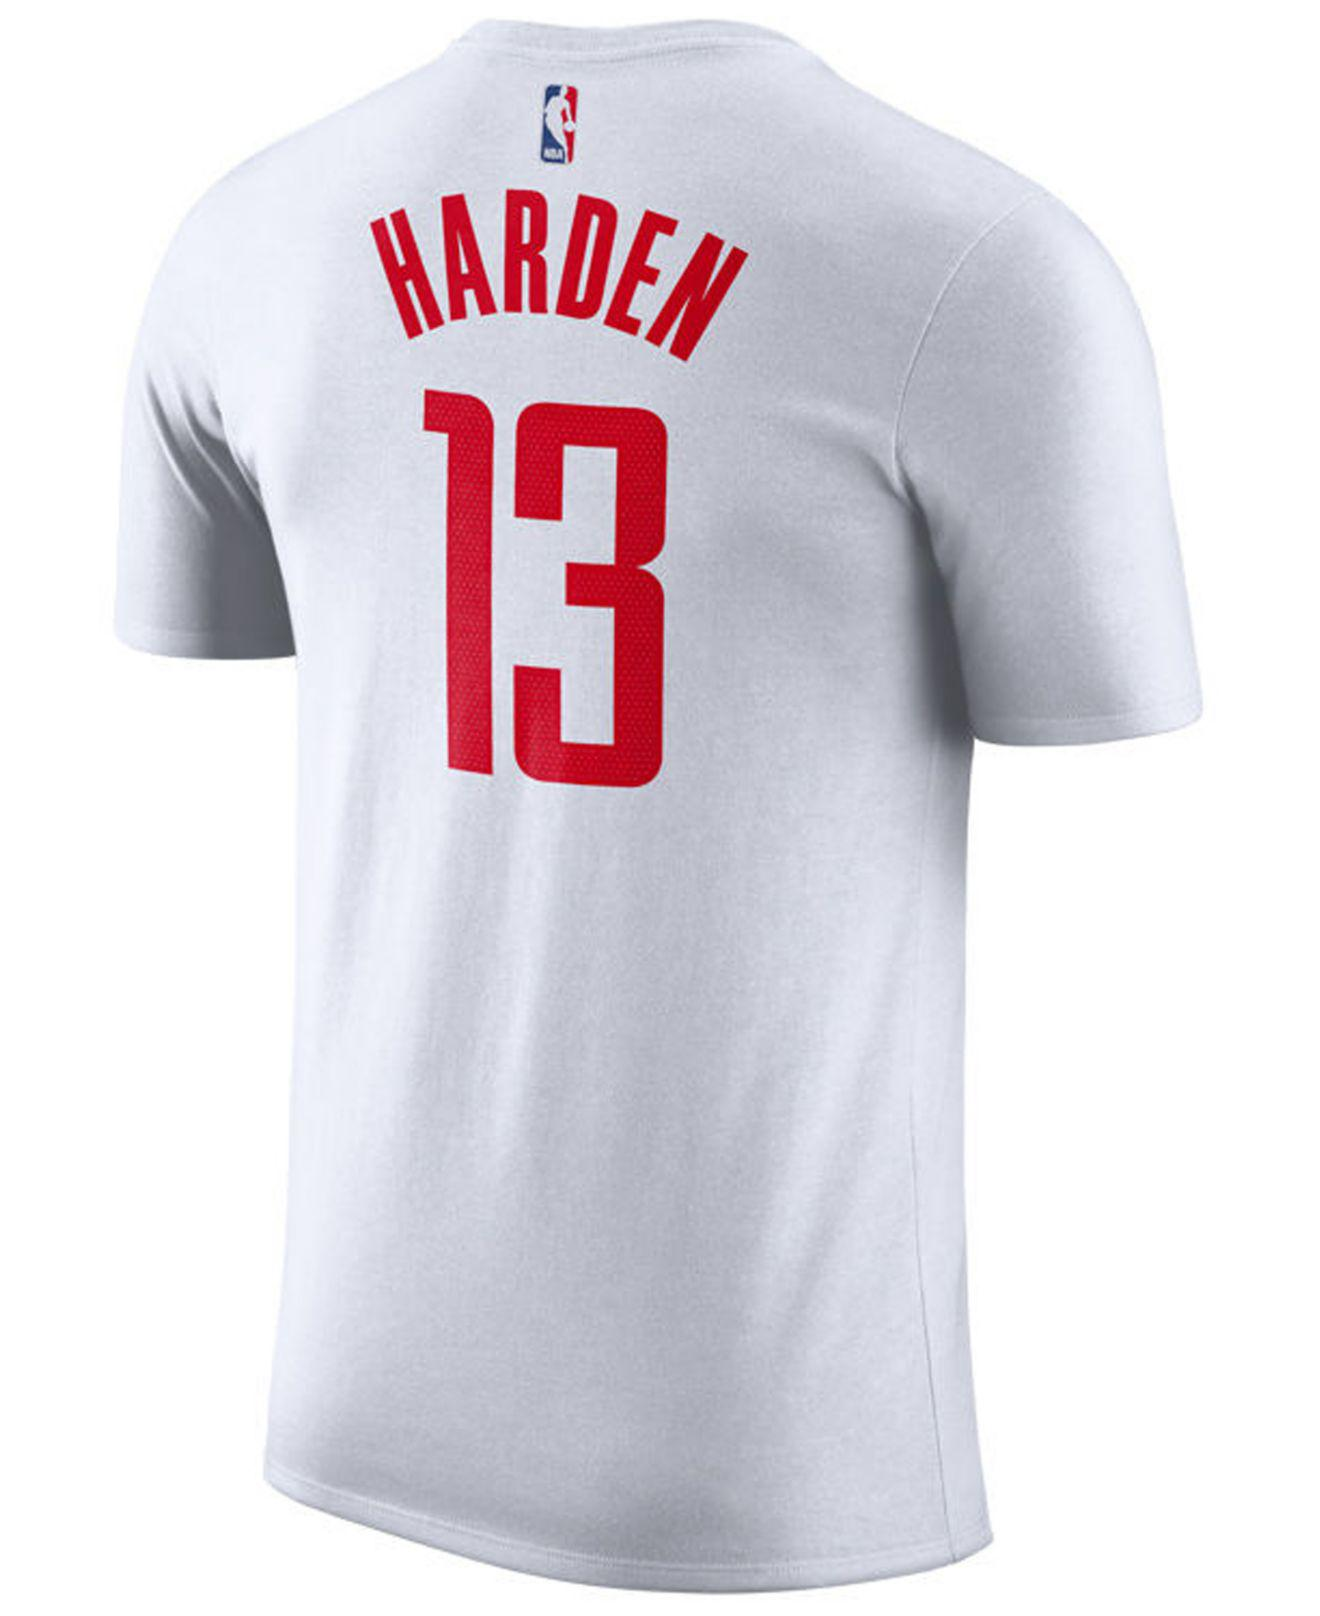 meet 4fed2 20ae8 promo code for houston rockets t shirt jersey 478f8 f02c7